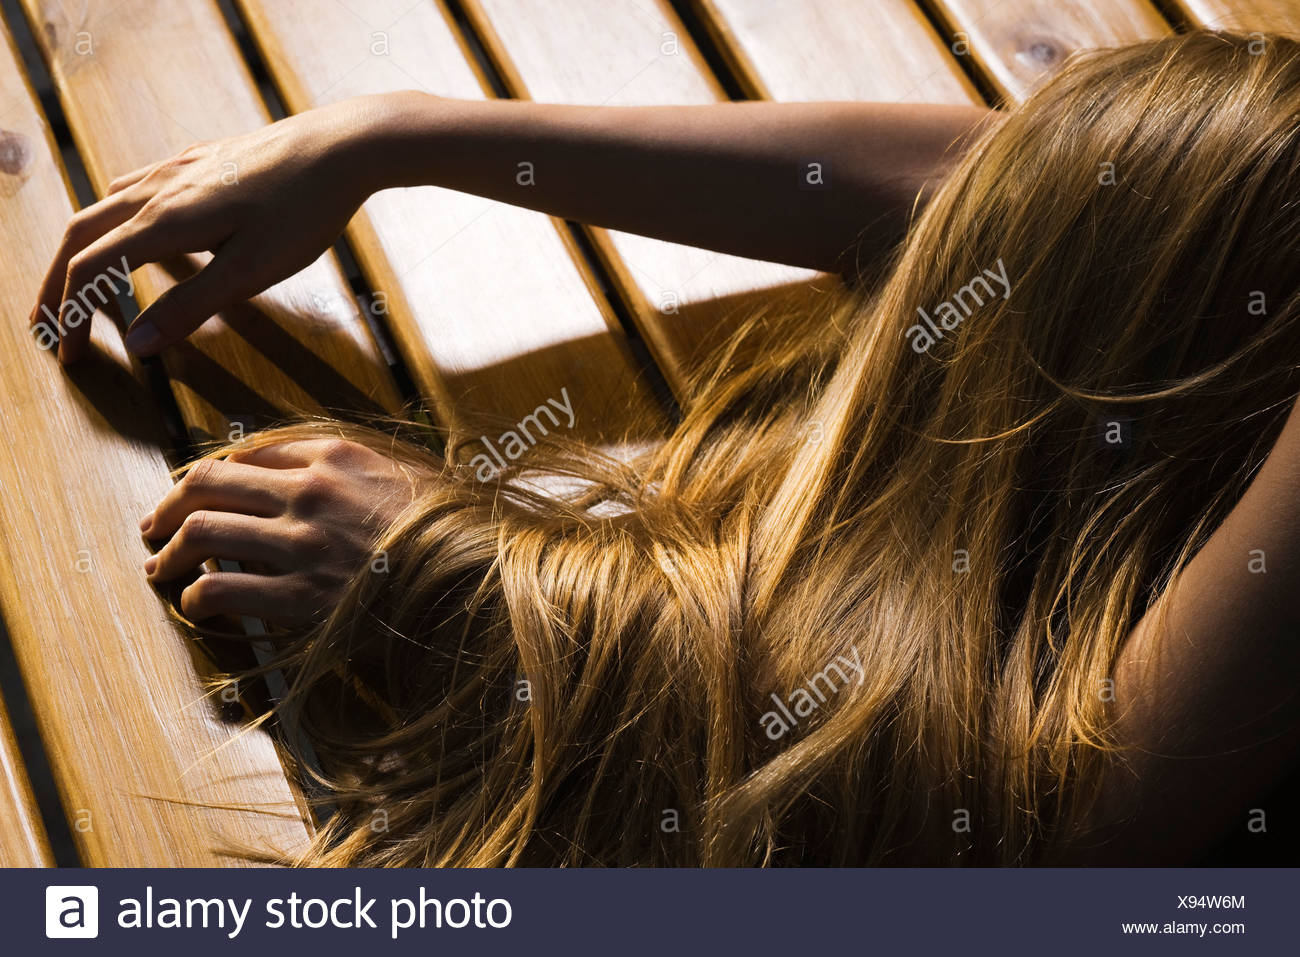 Woman lying face down on floor, long hair covering arm, cropped - Stock Image